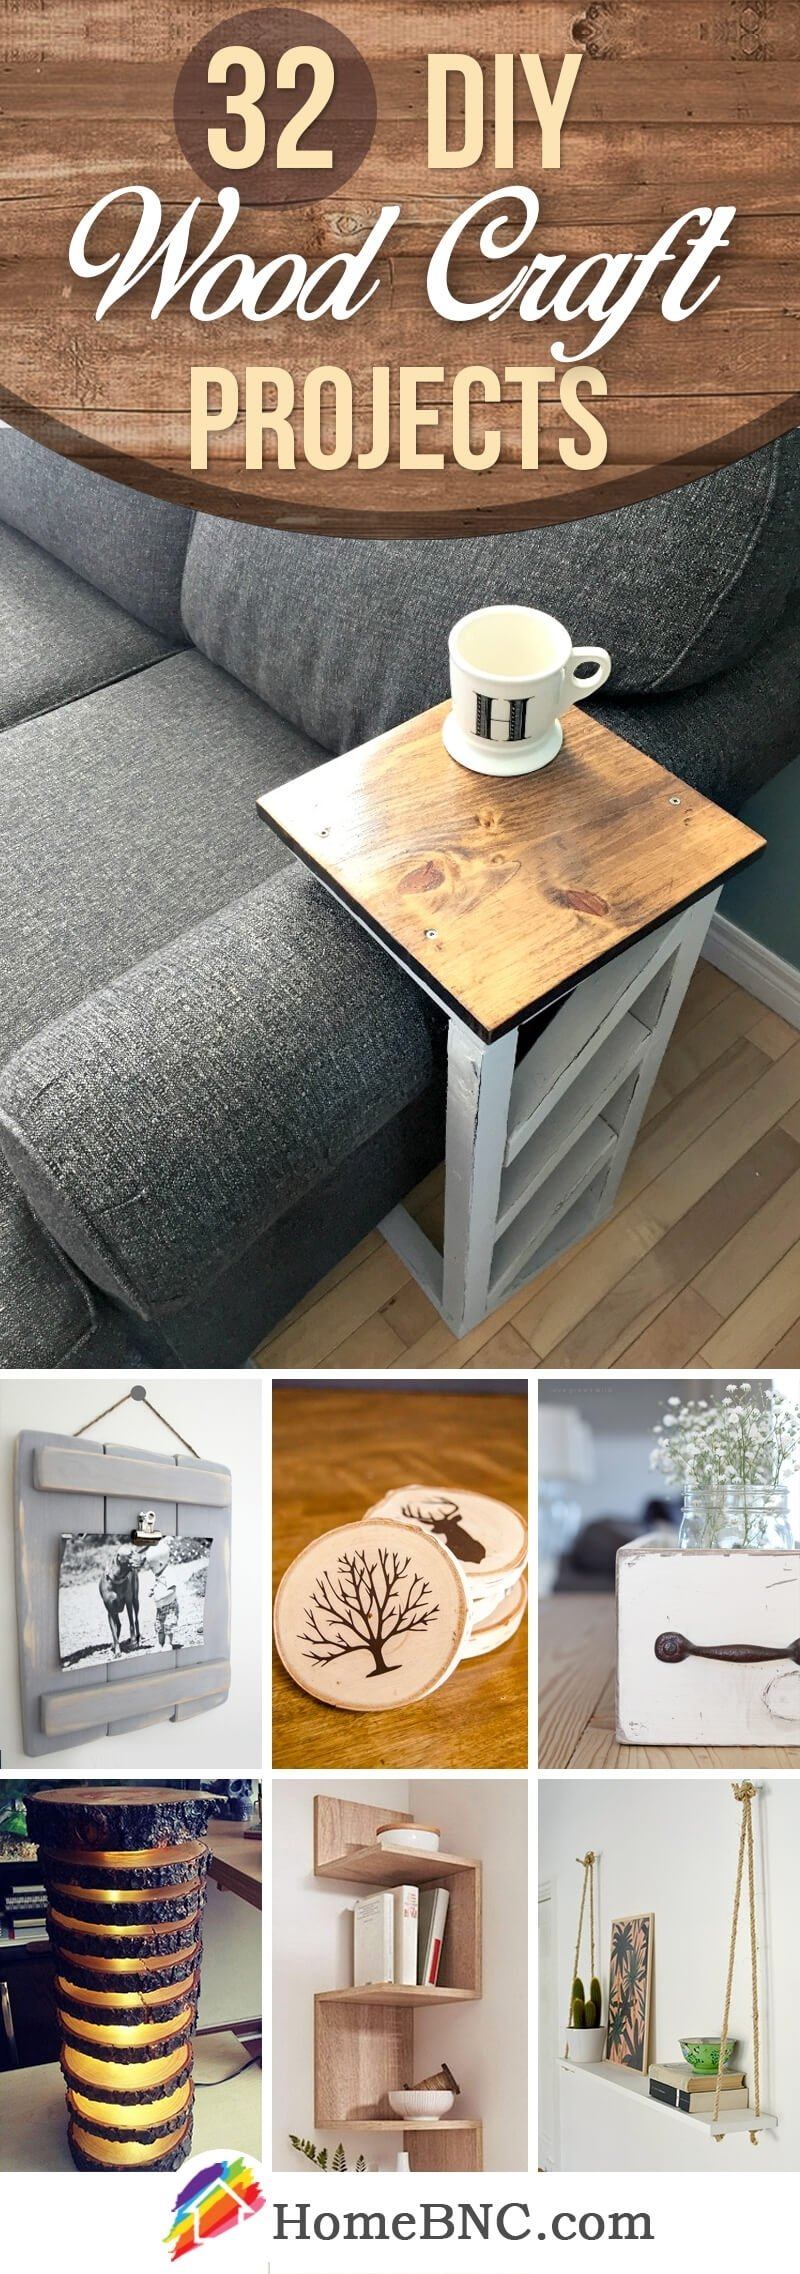 10 Best Wood Craft Ideas To Make 32 best diy wood craft projects ideas and designs for 2018 2020